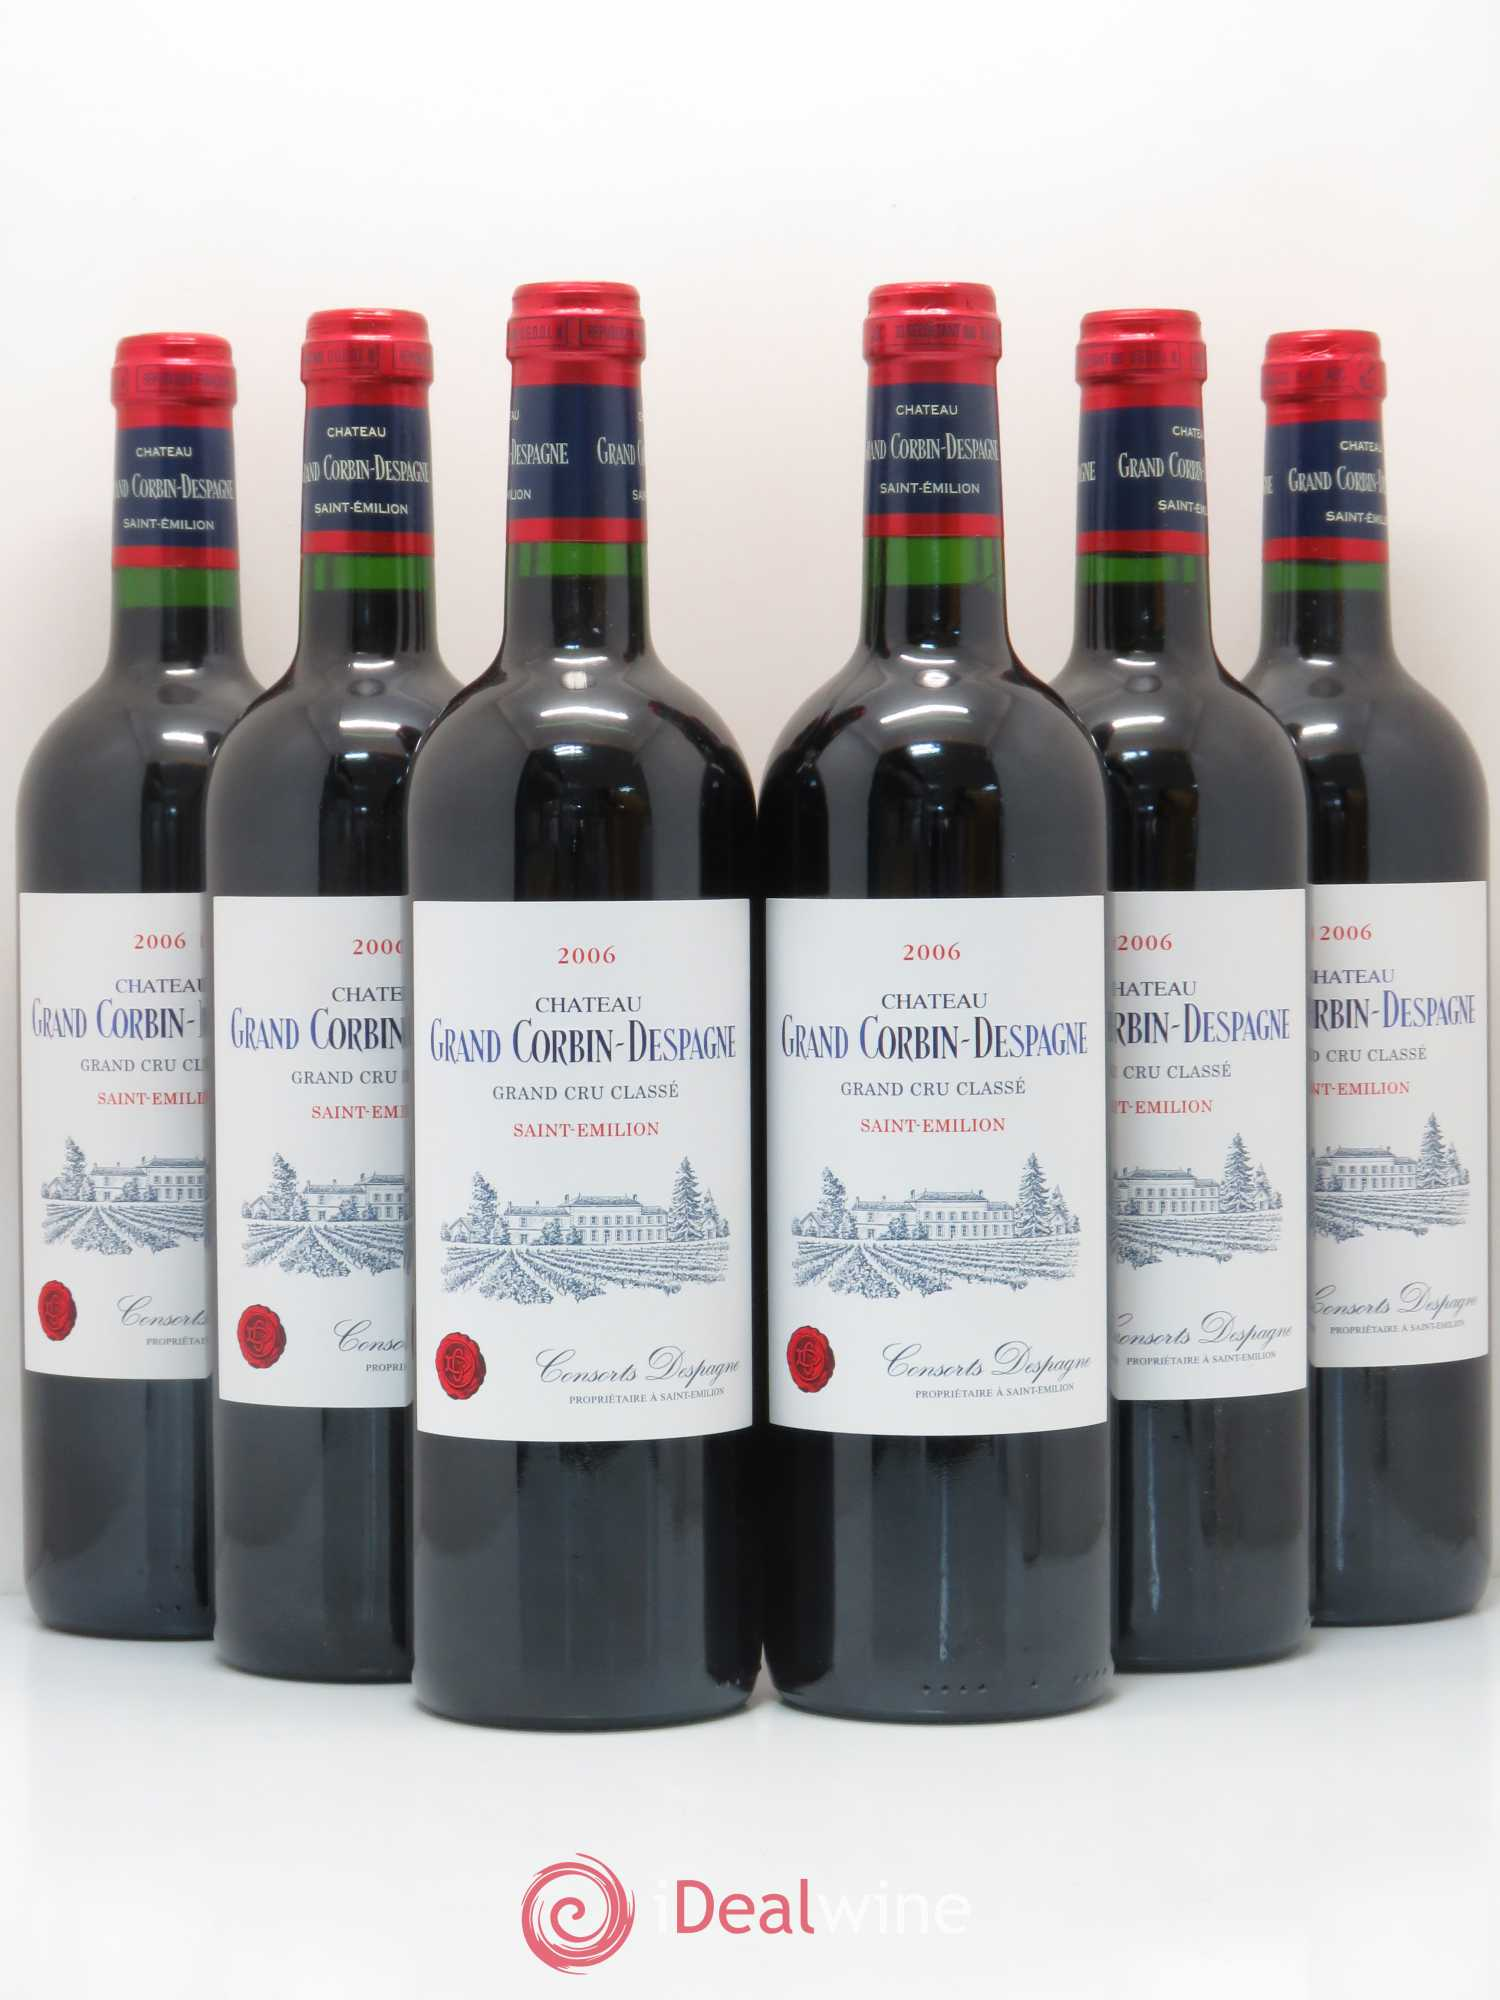 Château Grand Corbin Despagne Grand Cru Classé  2006 - Lot of 6 Bottles